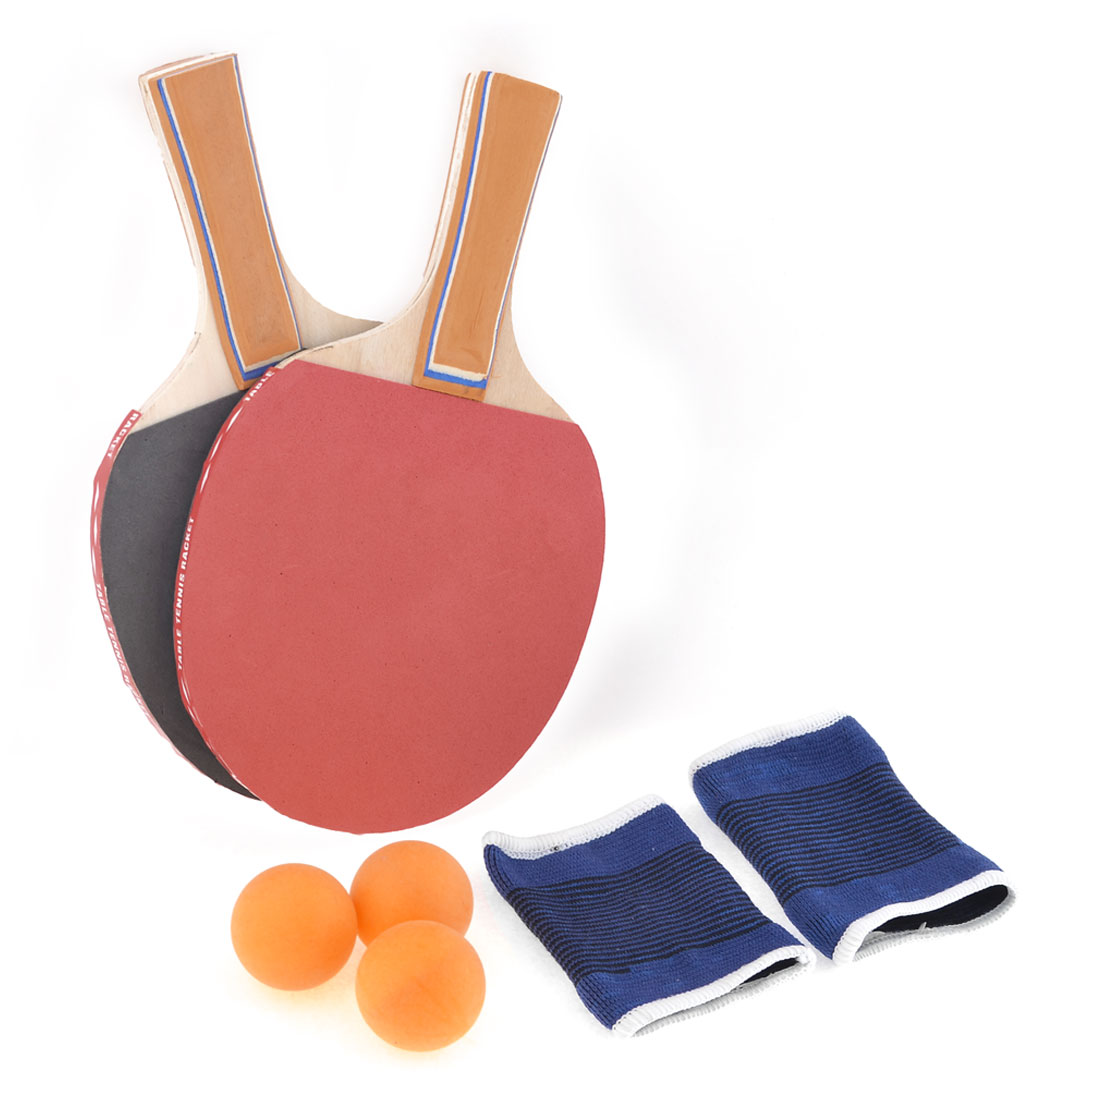 Orange Penhand Wood Grip Red Gray Rubber Ping Pong Table Tennis Sponge Paddle